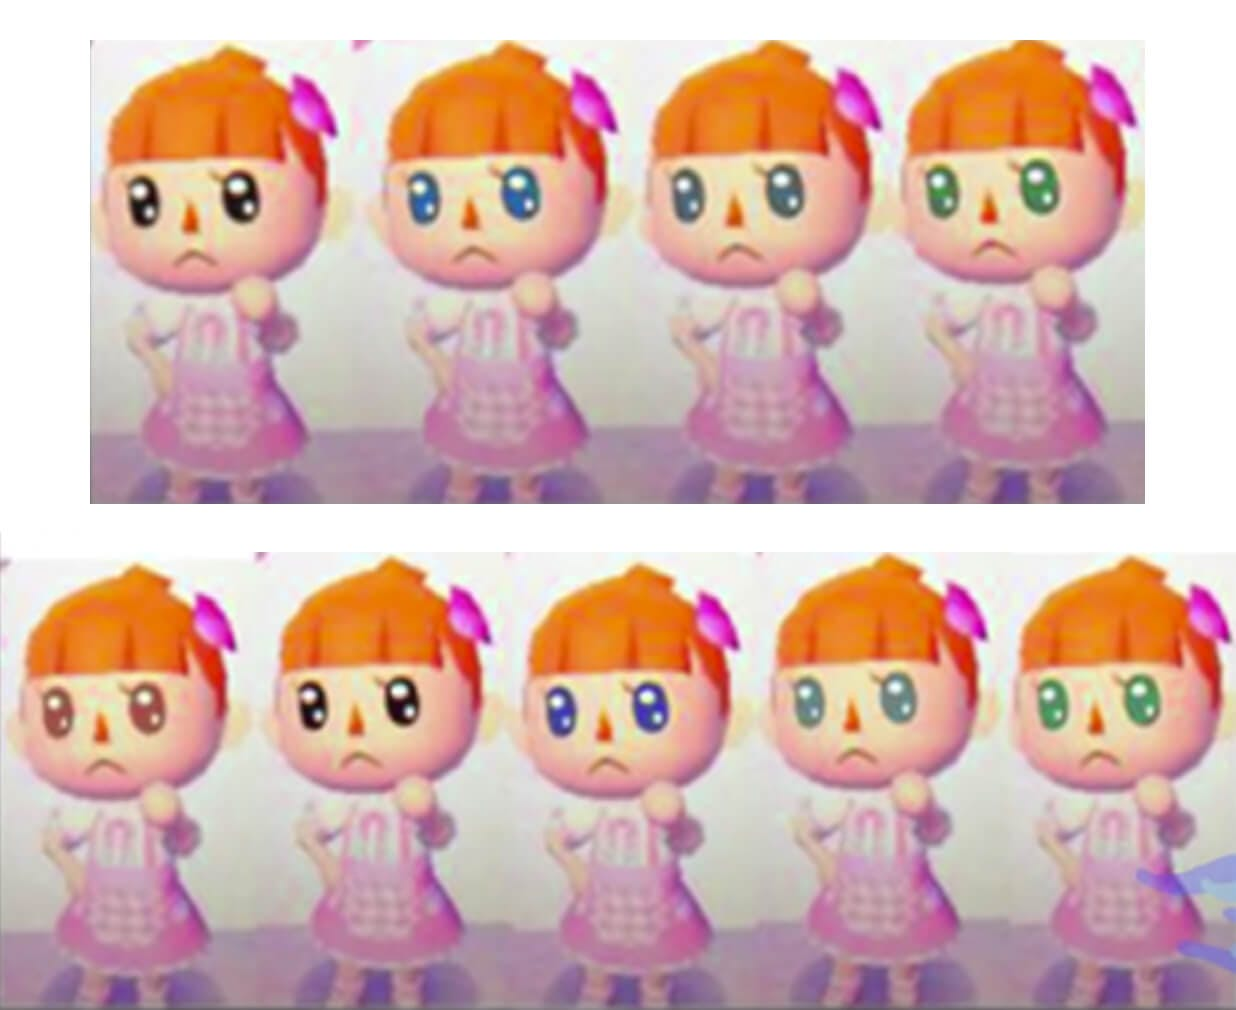 Photo of Animal Crossing: New Leaf that shows the menu for how to change your eye color in the game.